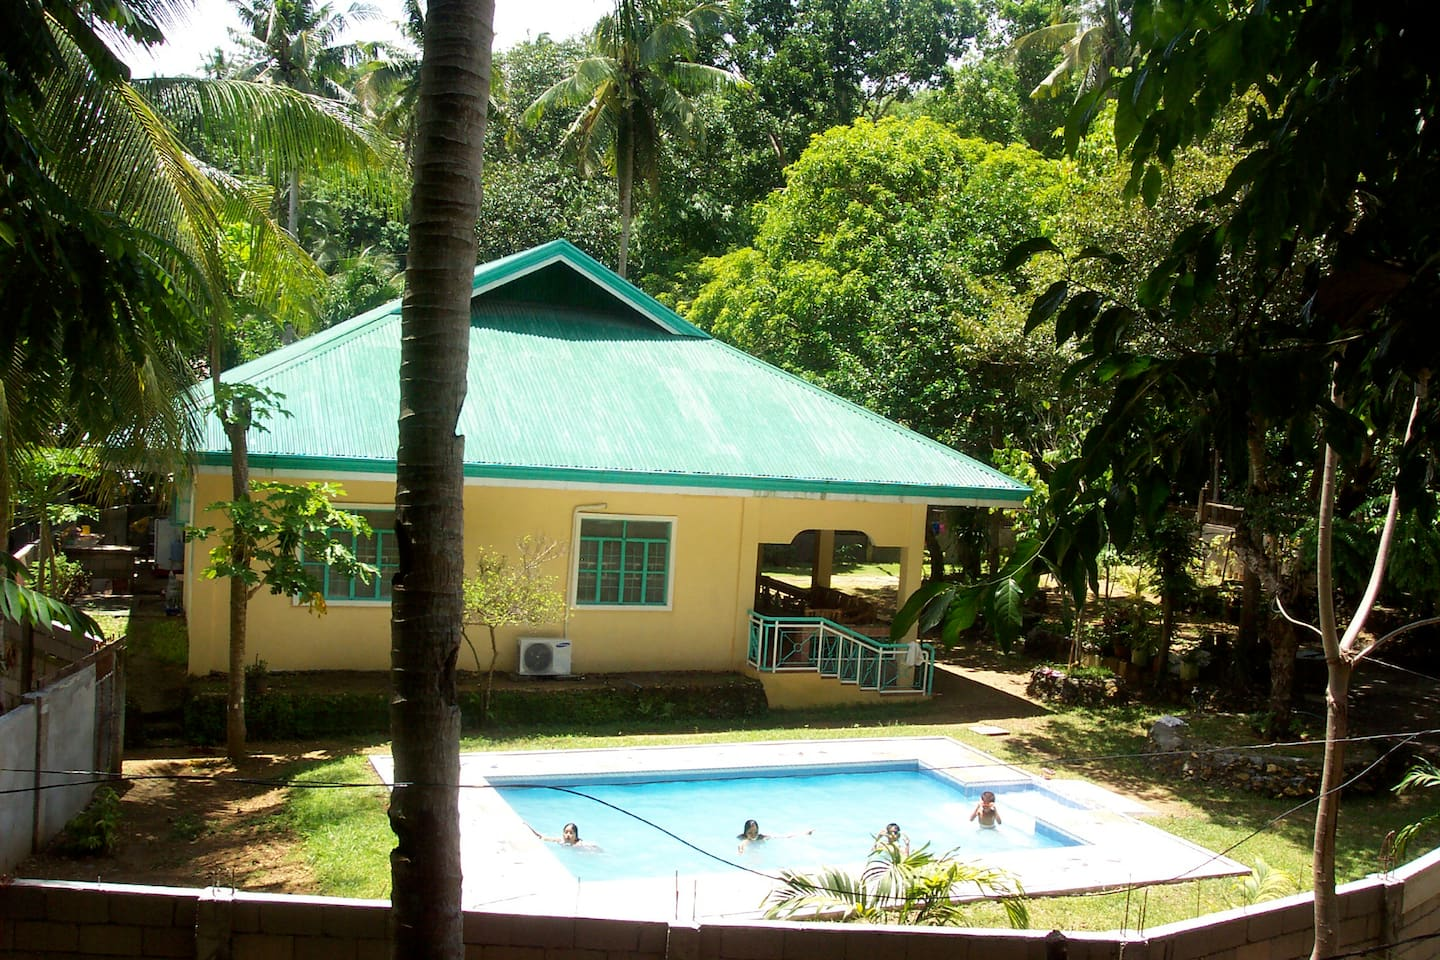 guimaras island with swimming pool - houses for rent in buenavista